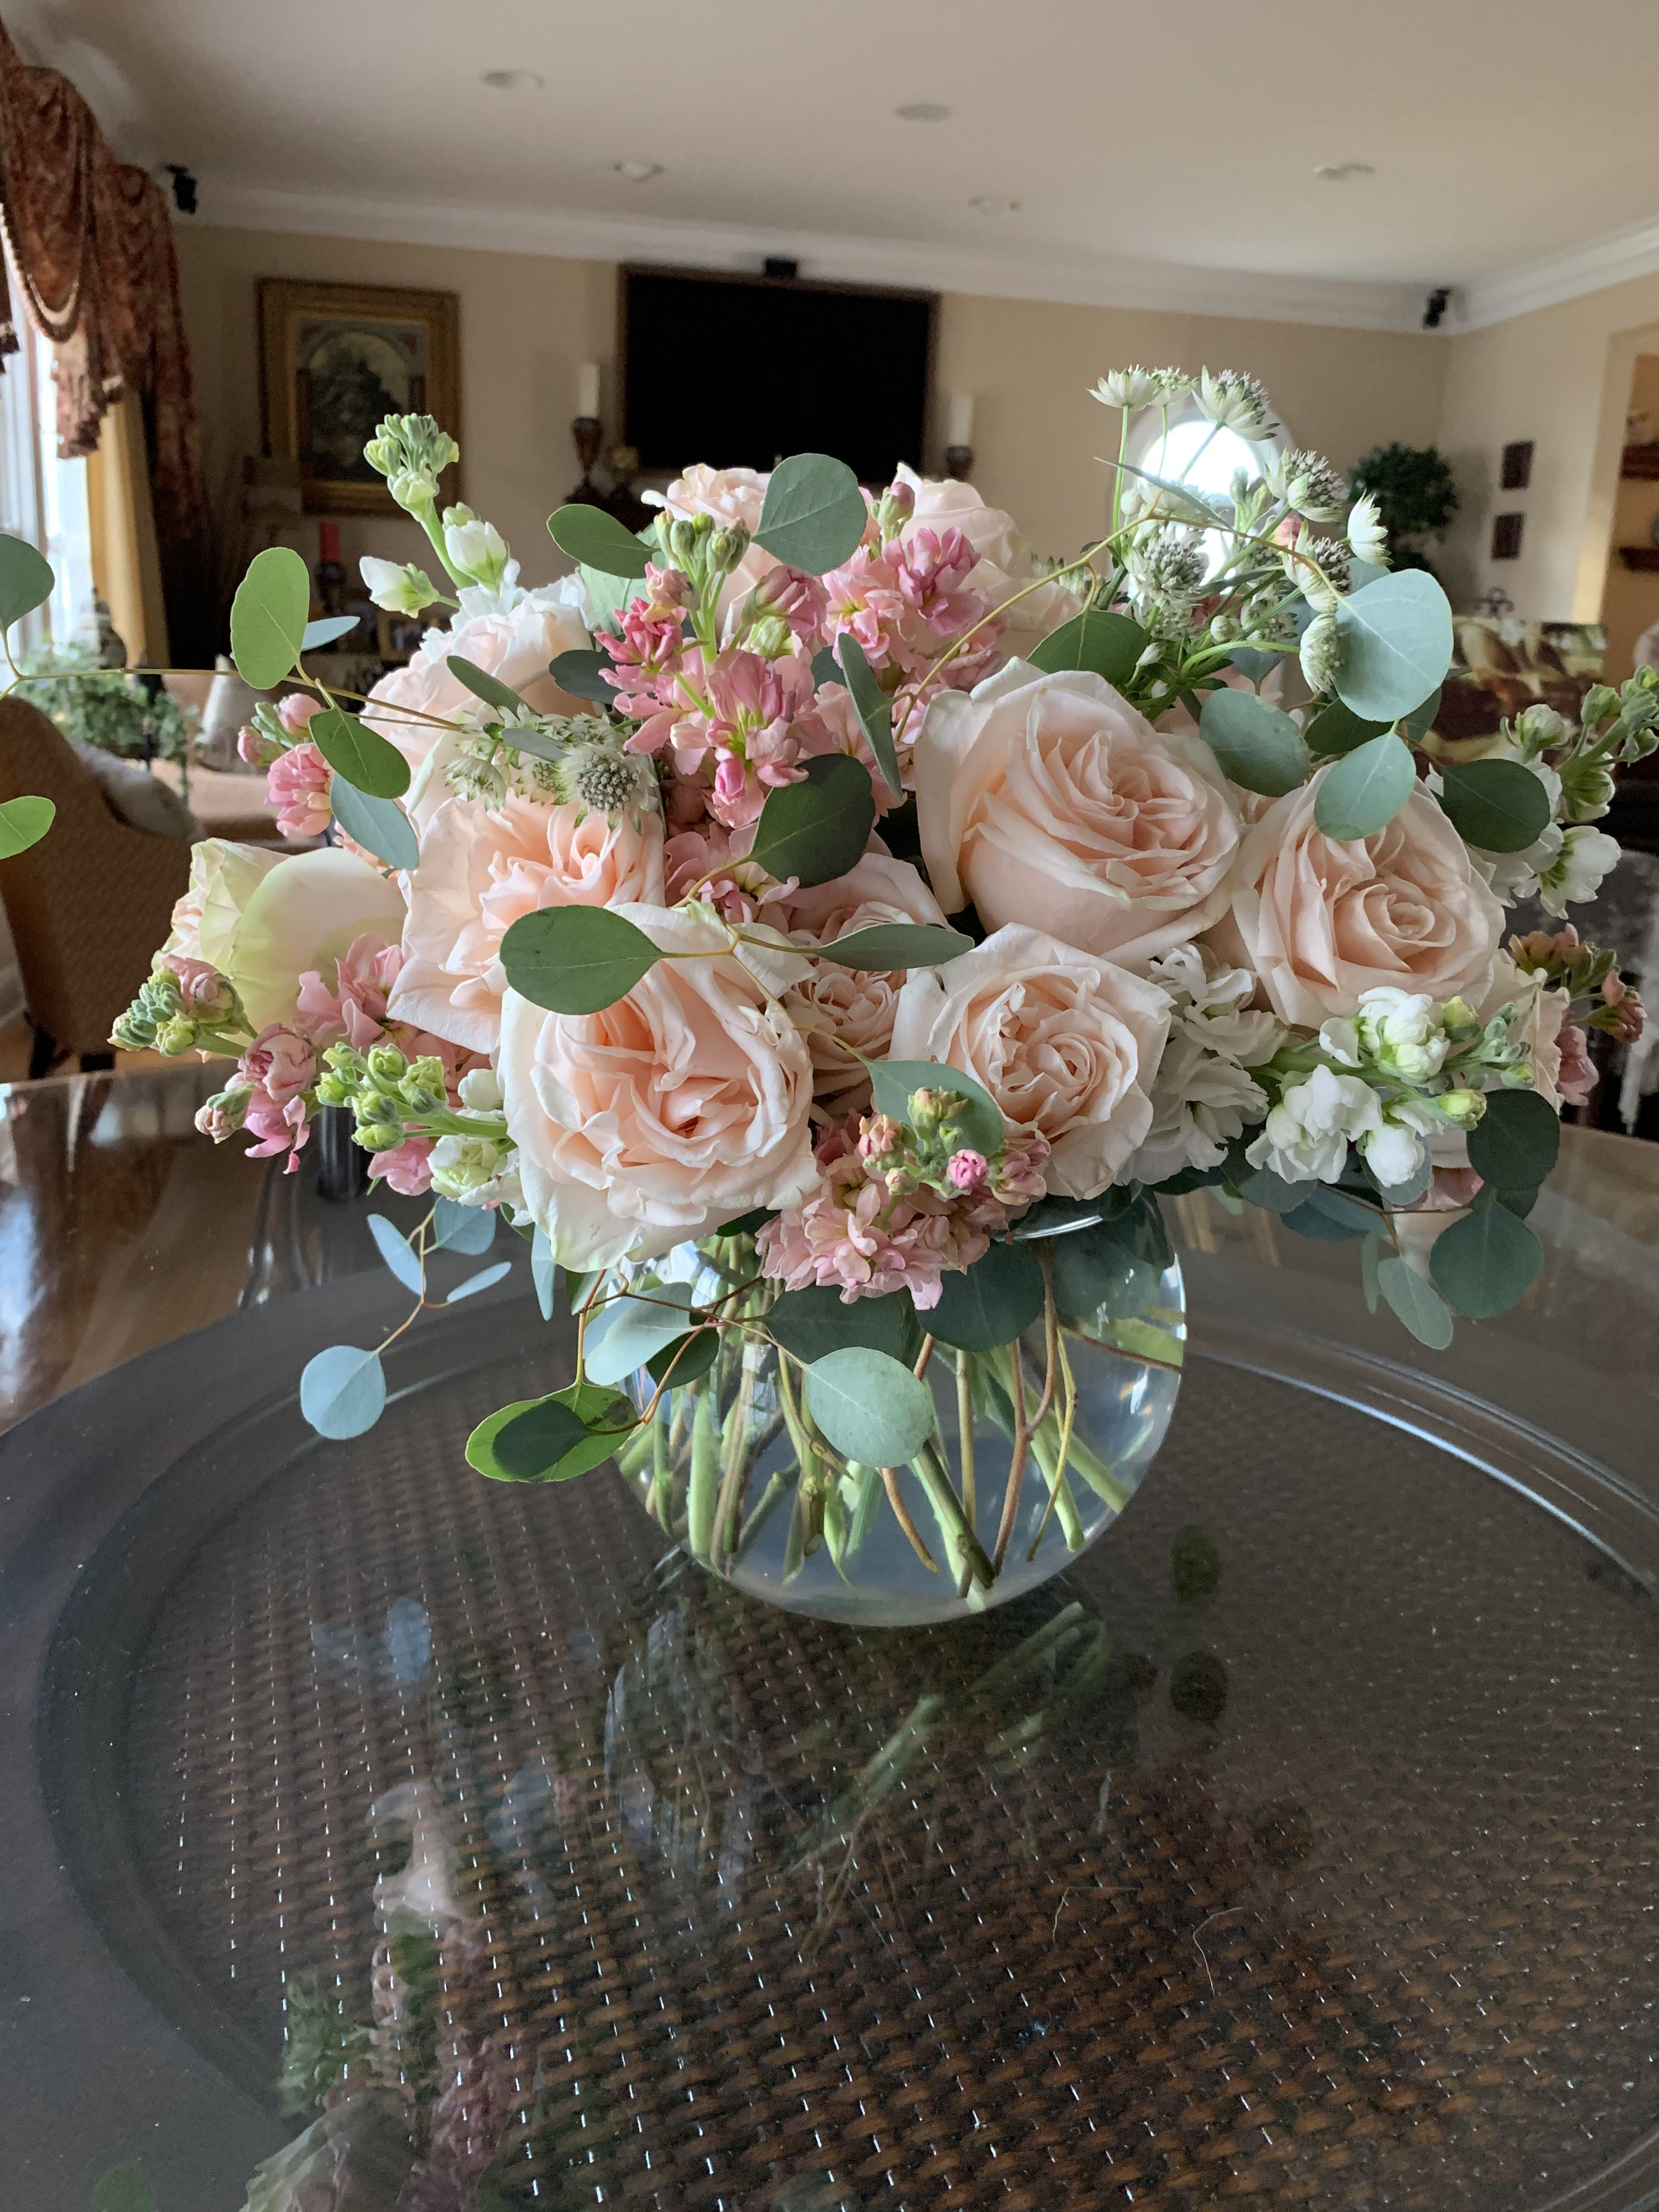 Bubble Bowl Full Of Peach And White Stock And Garden Roses Birthday Flowers Arrangements Flower Vase Arrangements Flower Arrangements Center Pieces